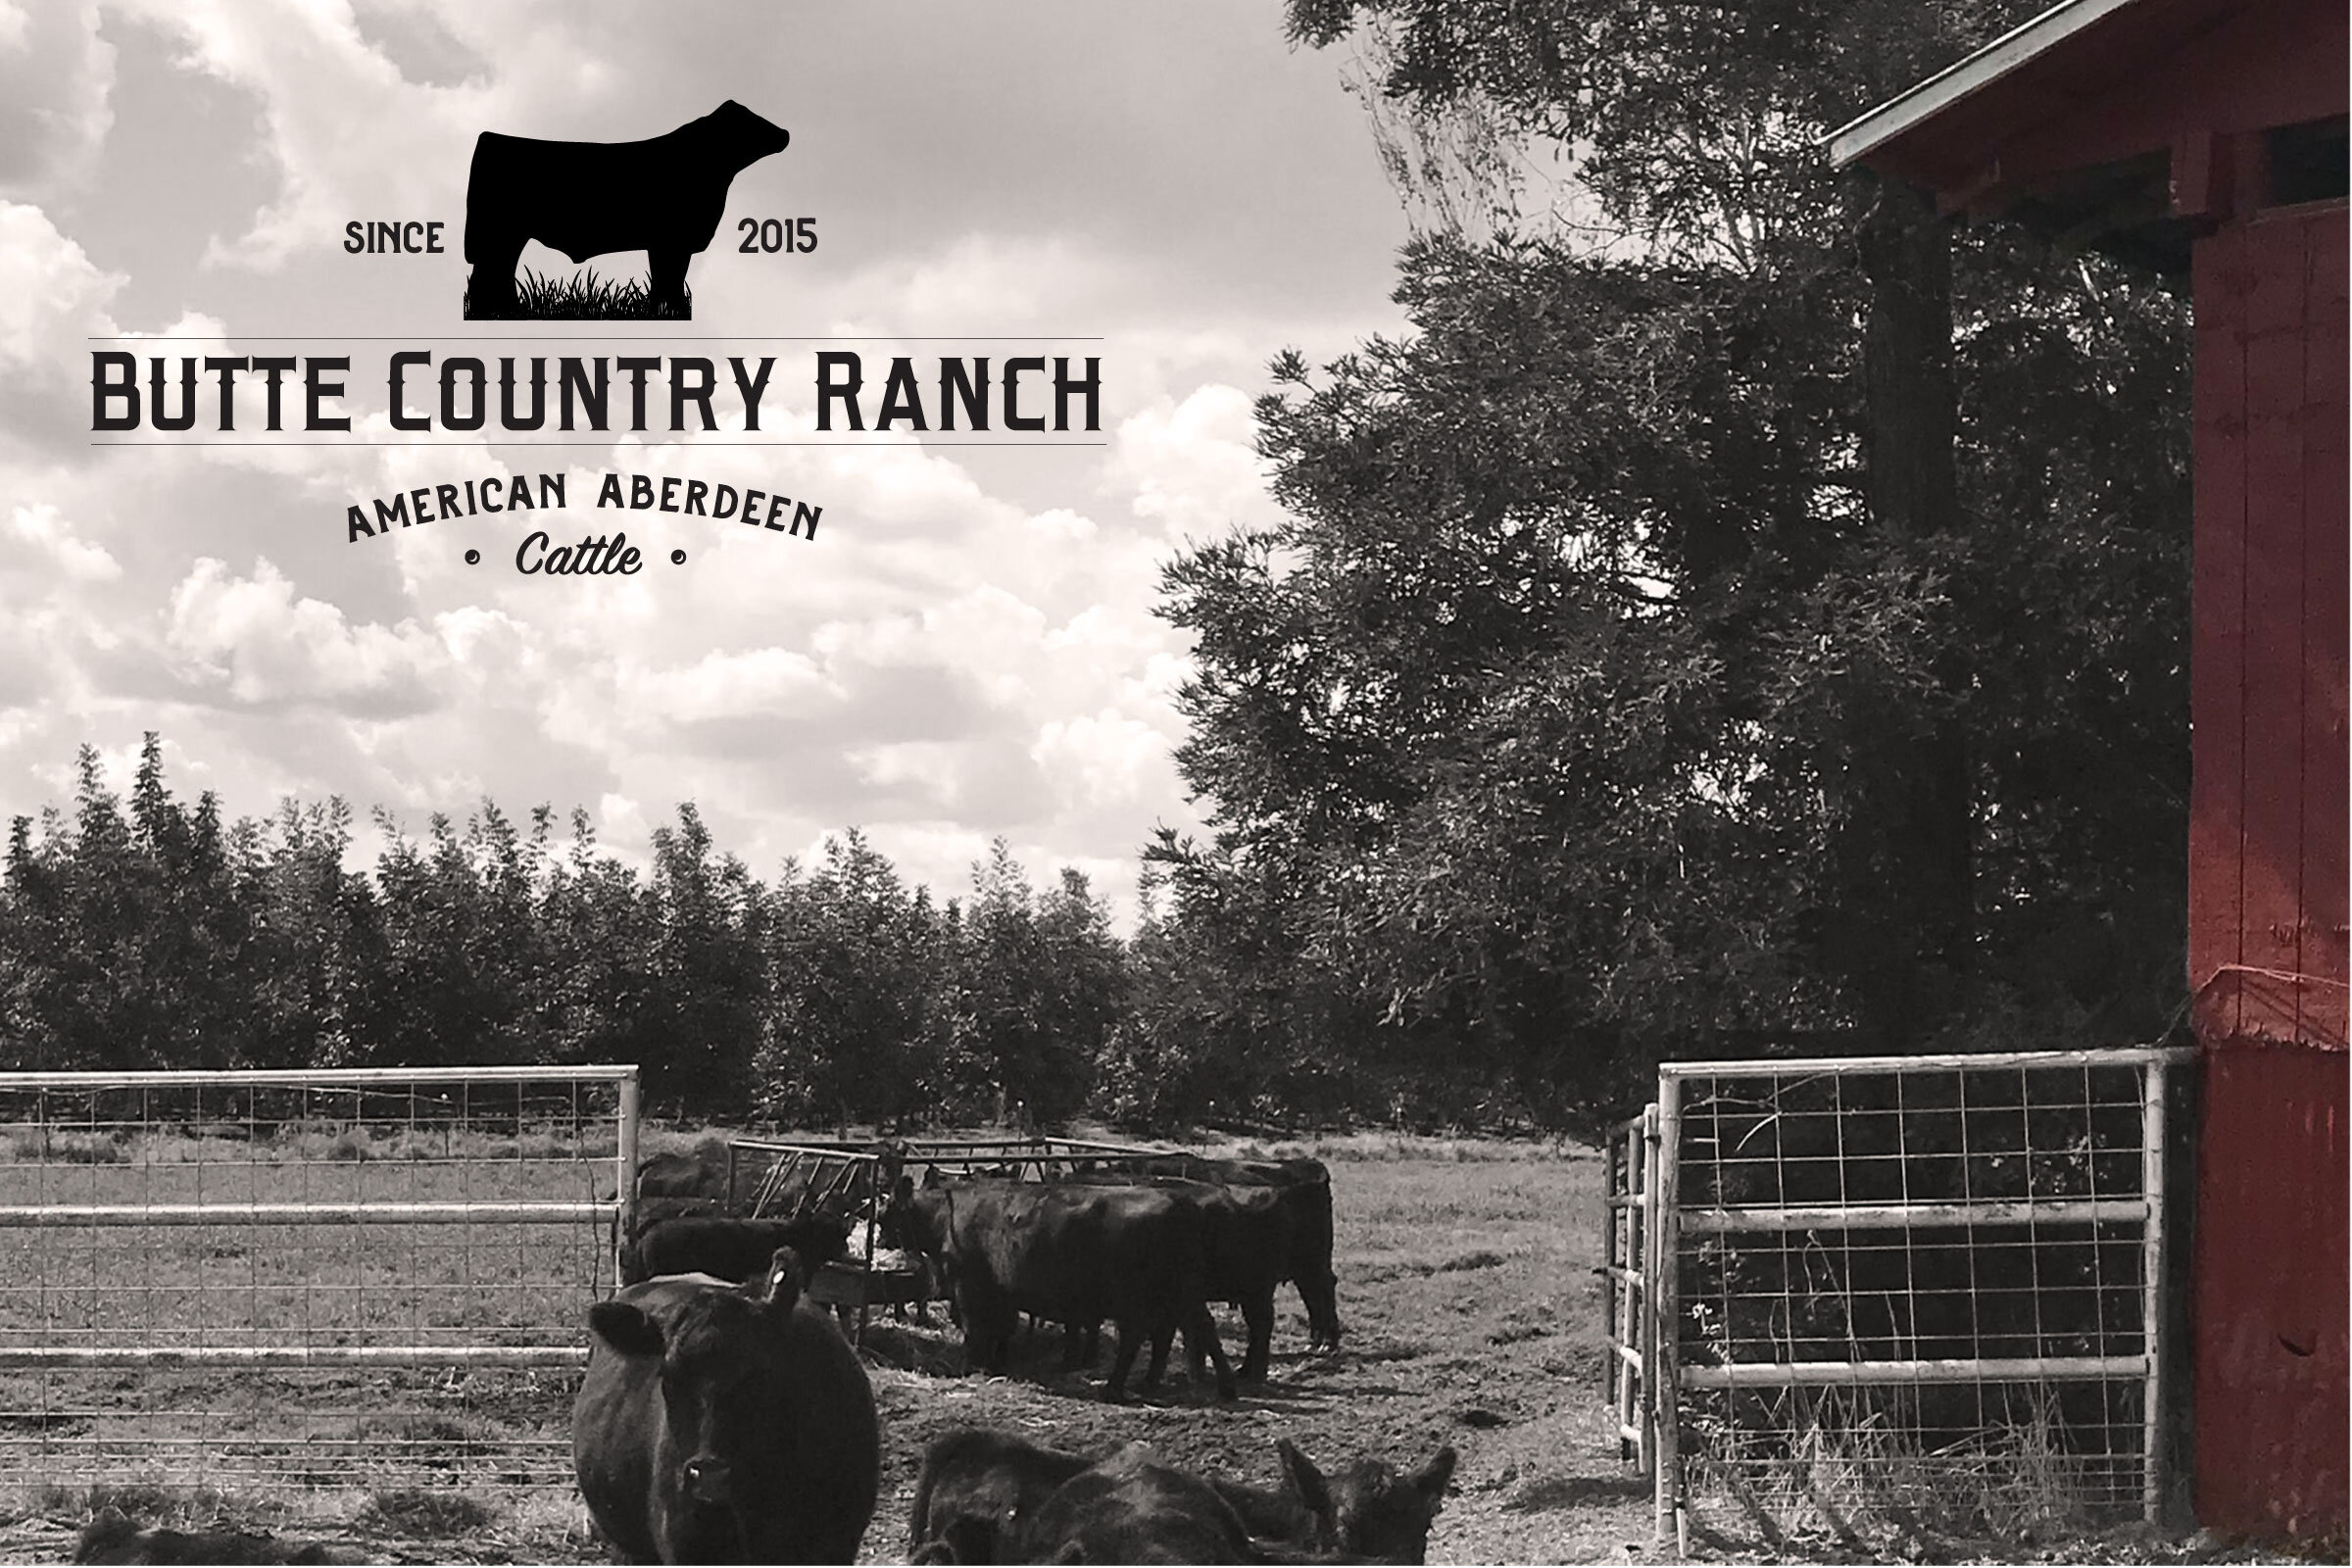 A newly designed cattle ranch logo for Butte Country Ranch in Northern California by graphic designer Sara Landis.